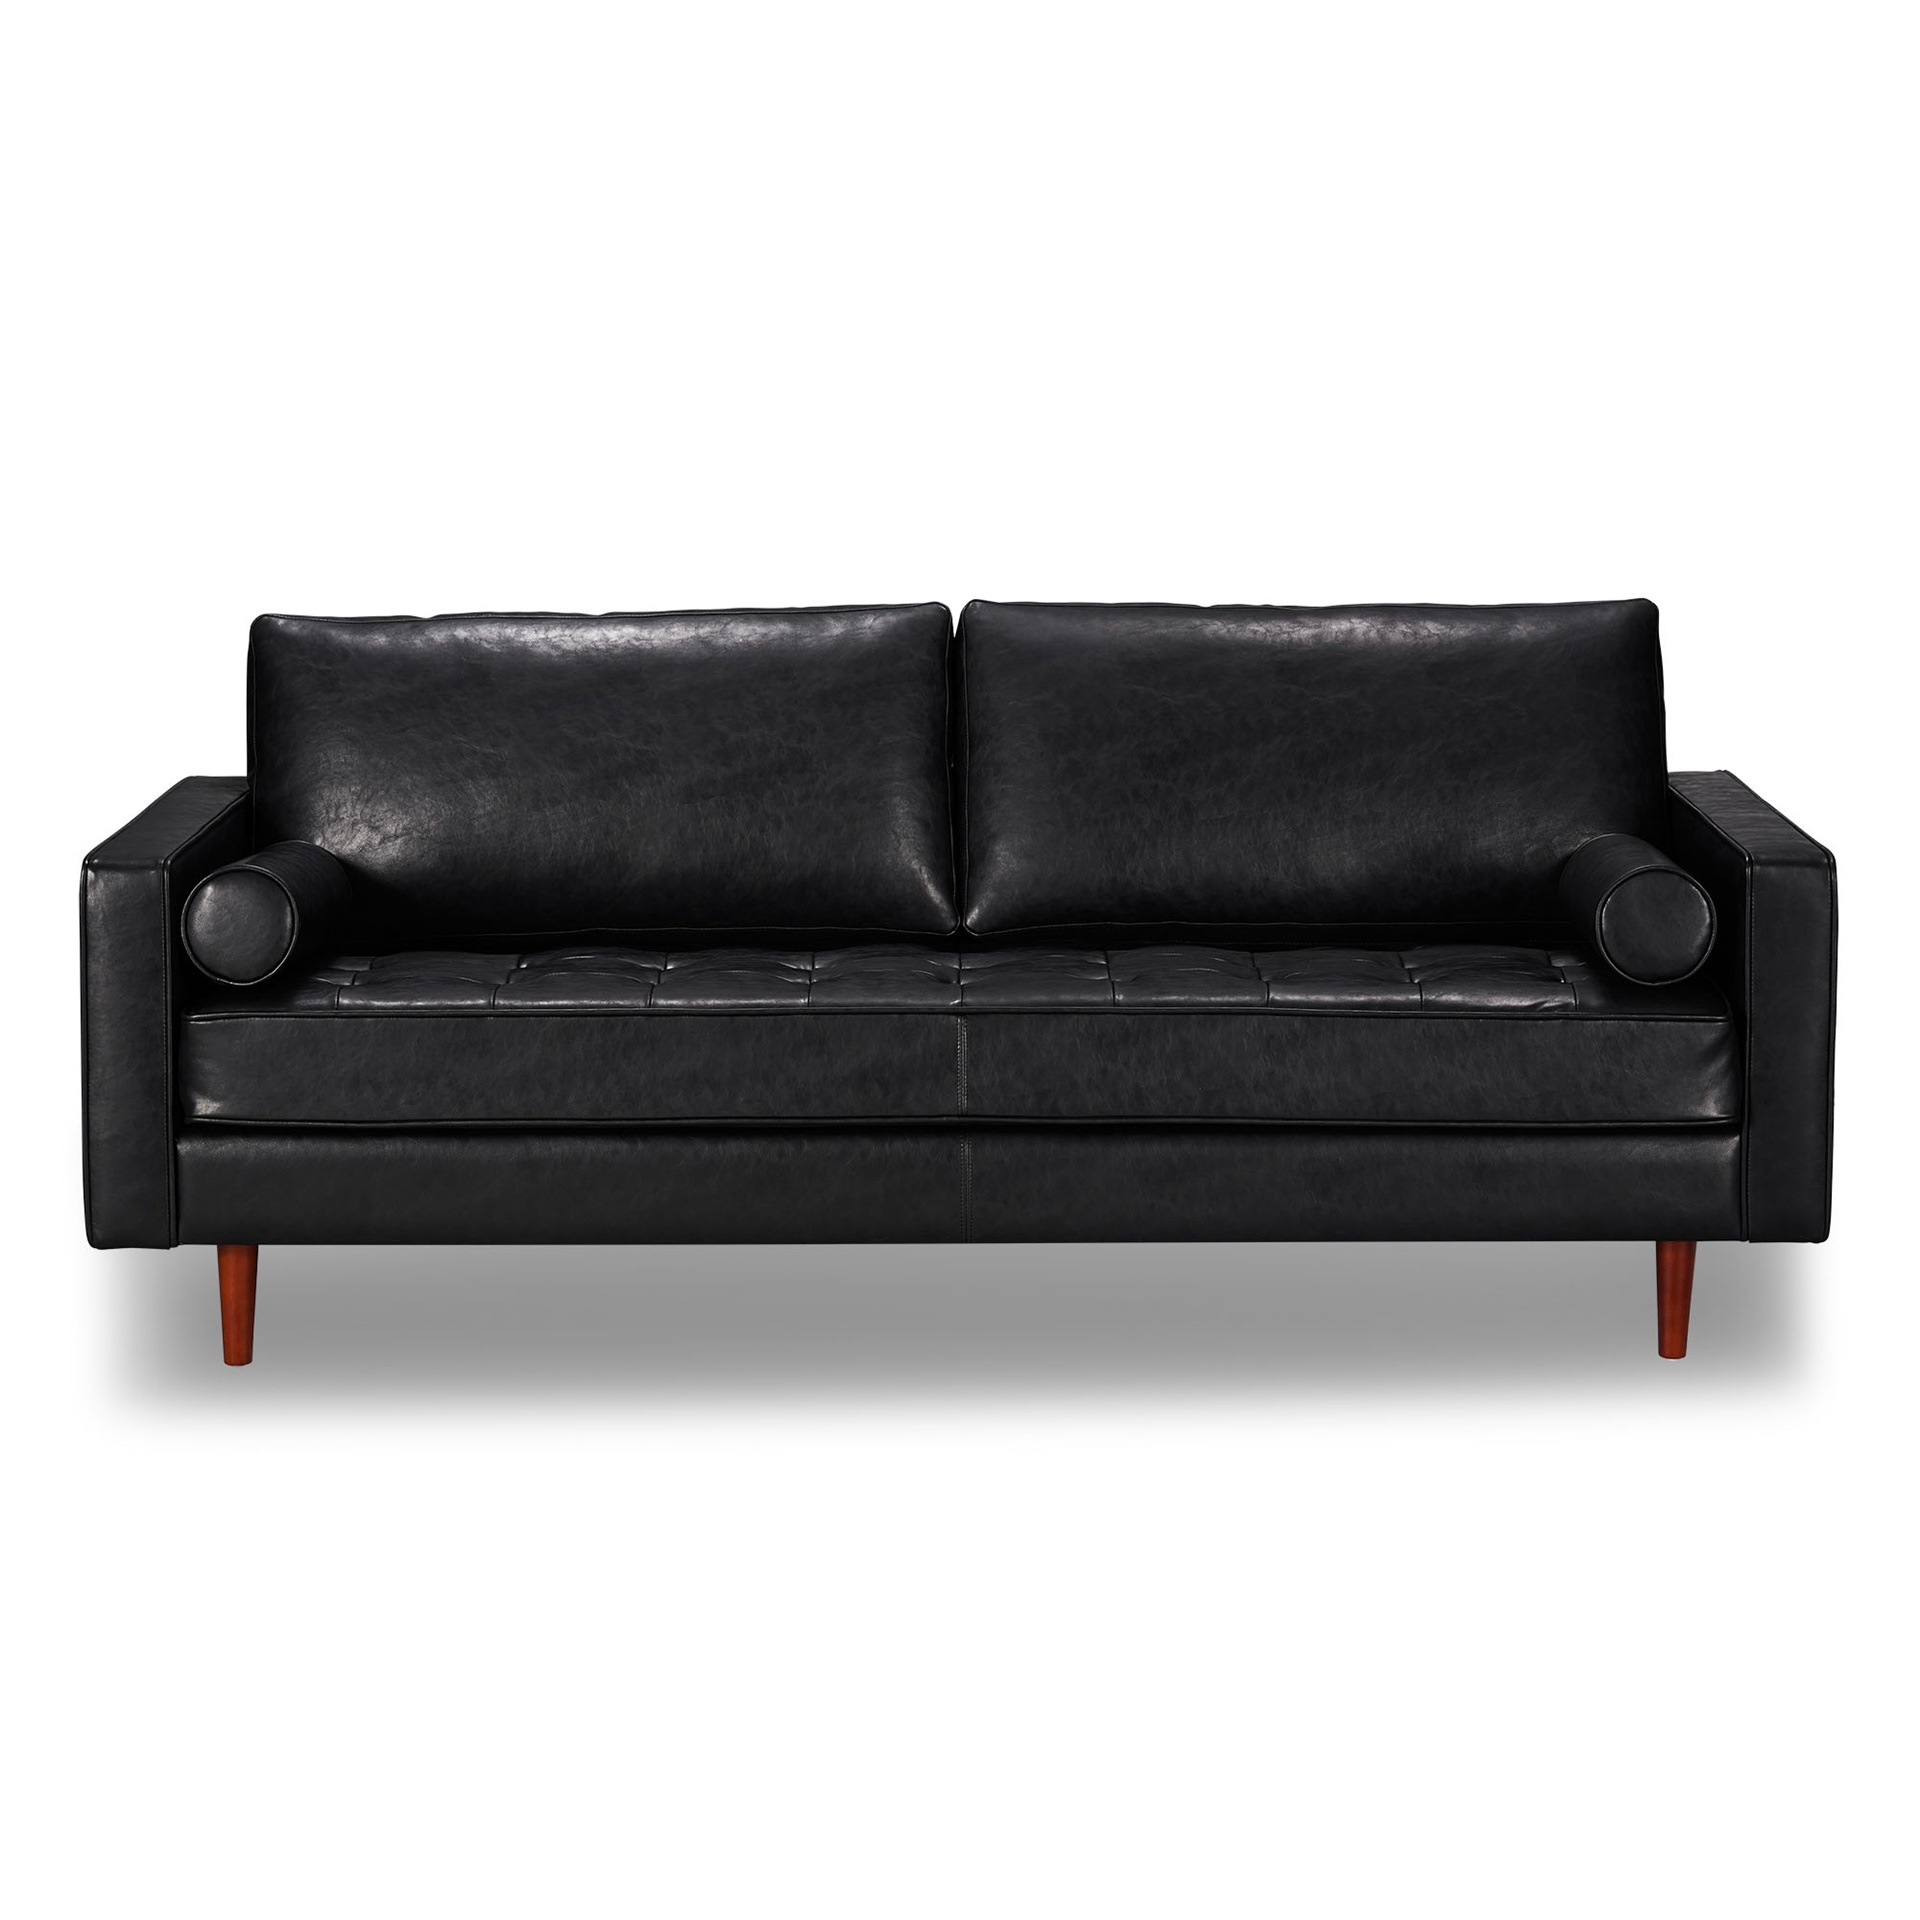 Ashton Vintage Leather Sofa